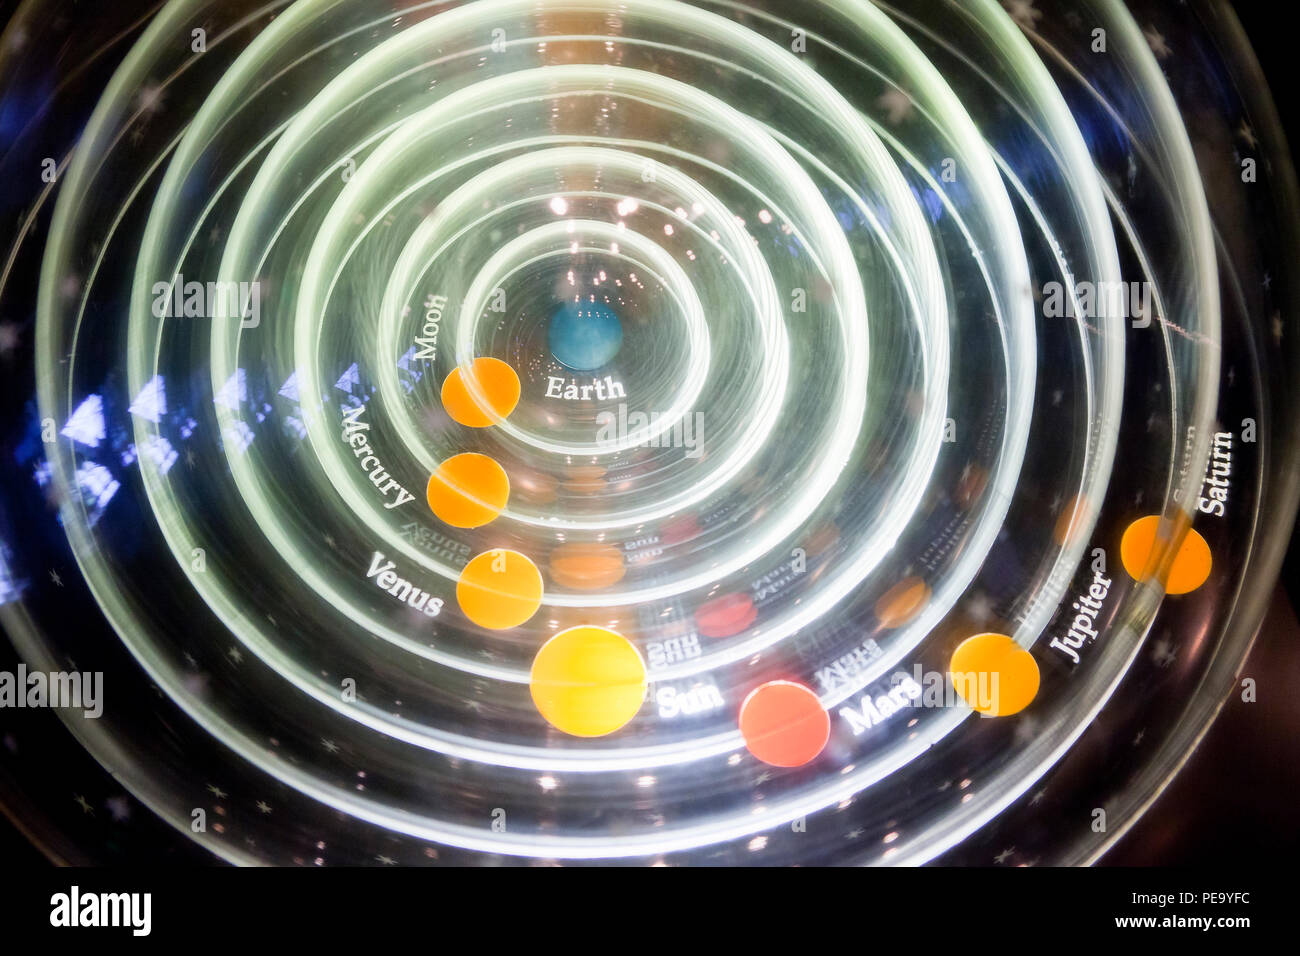 Model of Earth centered Solar System (Geocentric model) - Stock Image